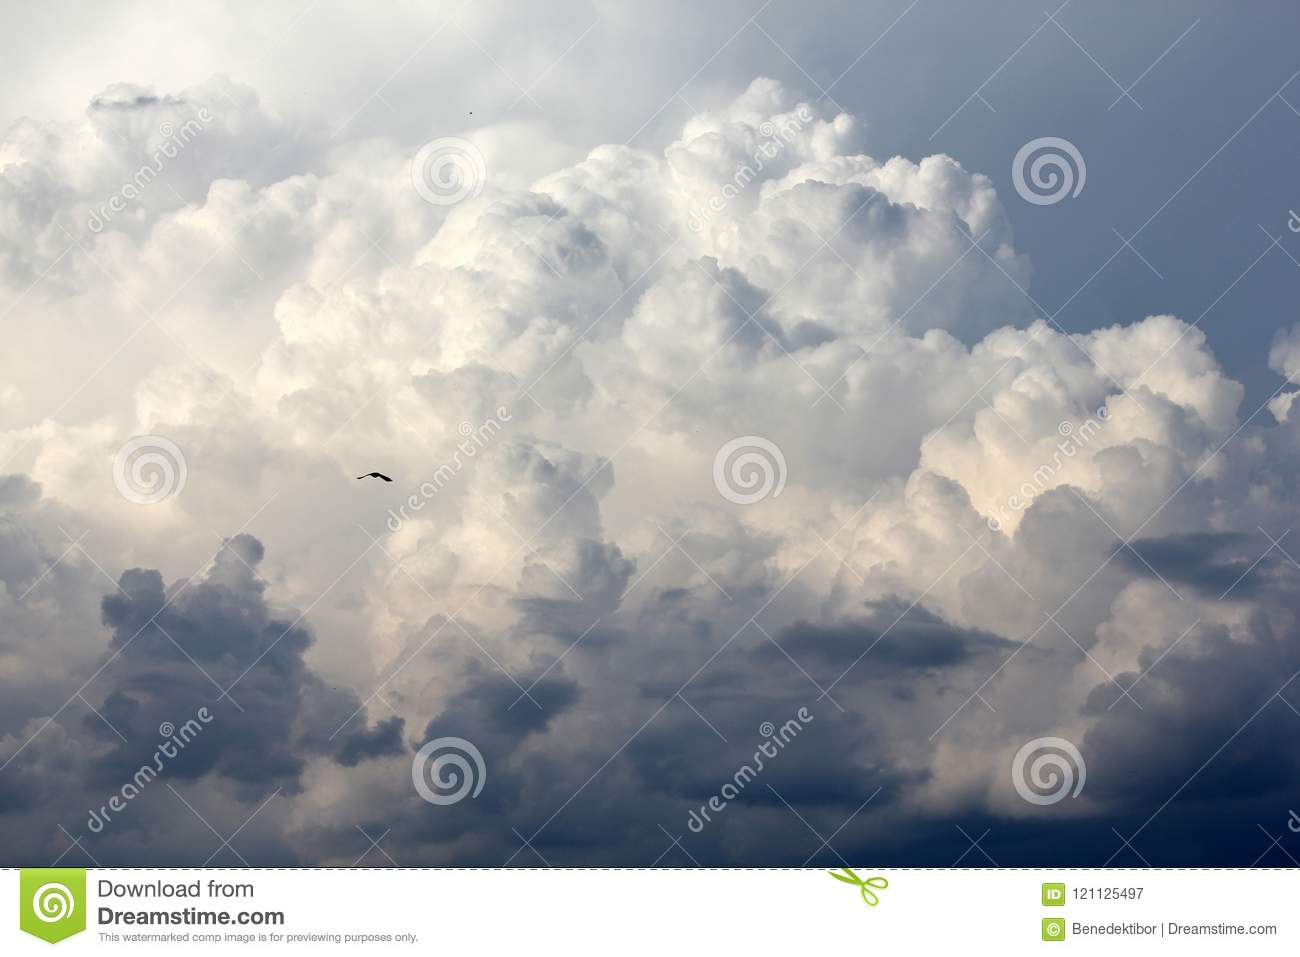 Bird soaring among clouds